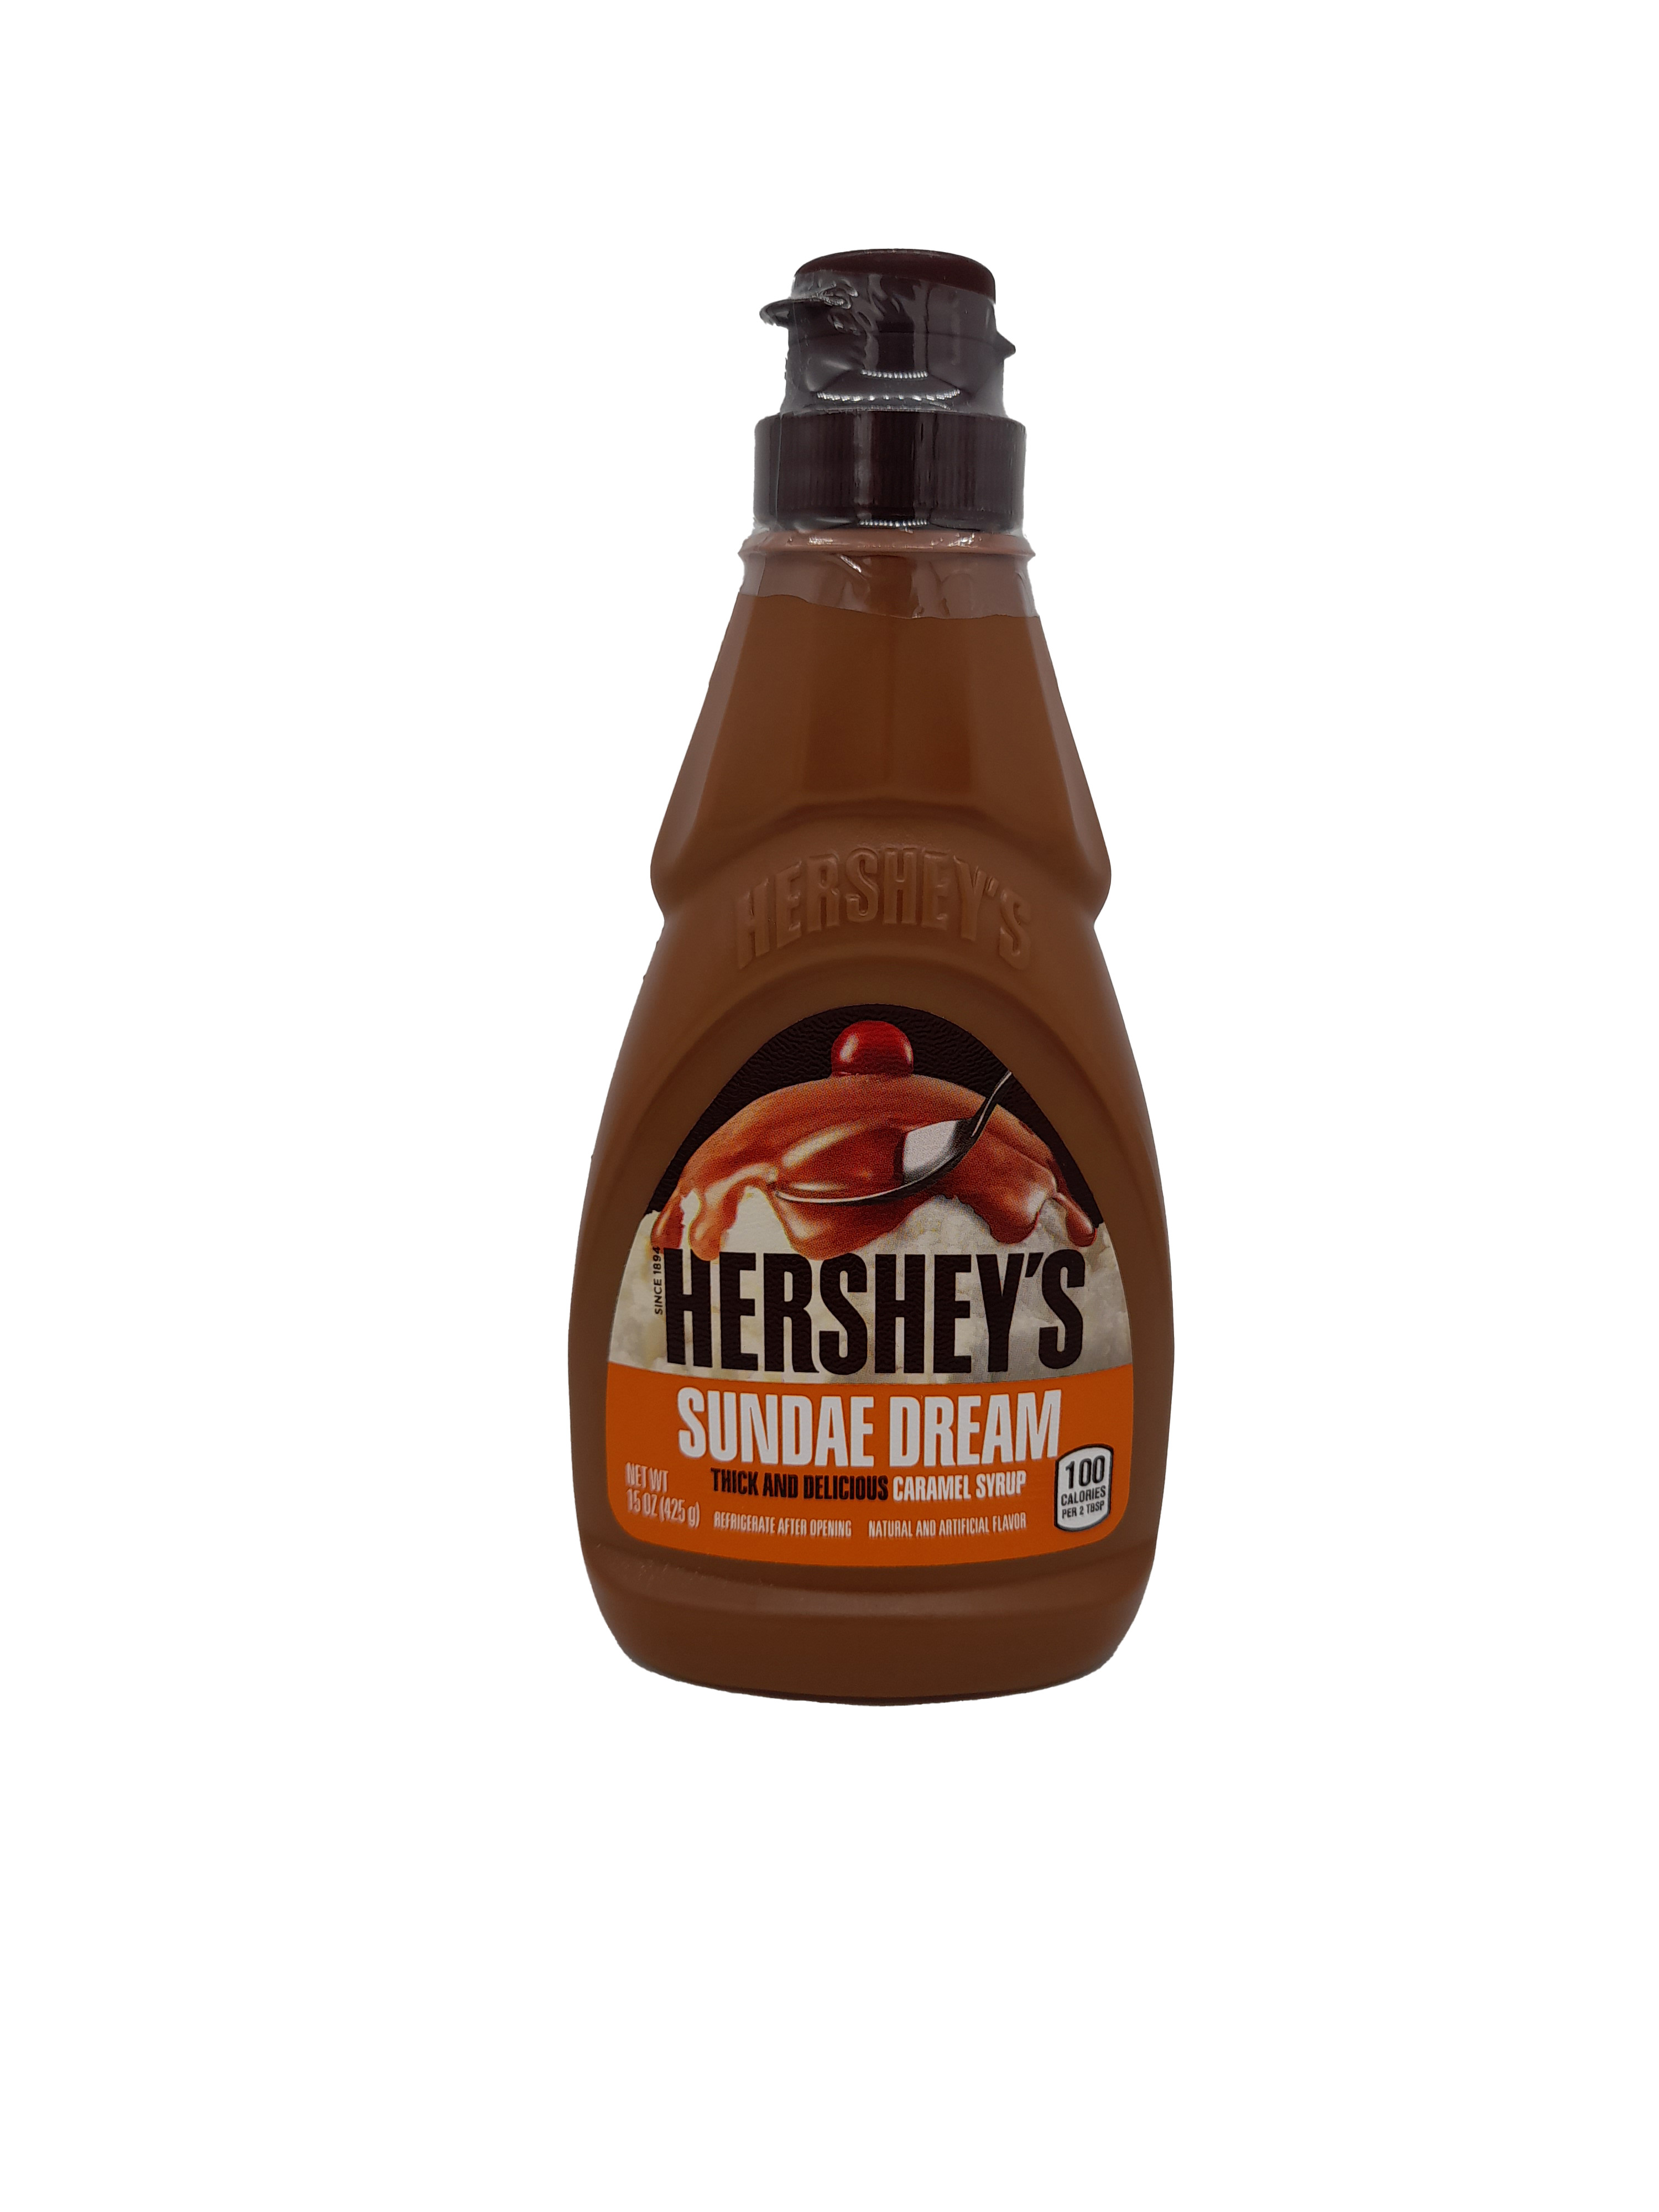 Hershey's Sundae Dream Thick and Delicious Caramel Syrup 425g